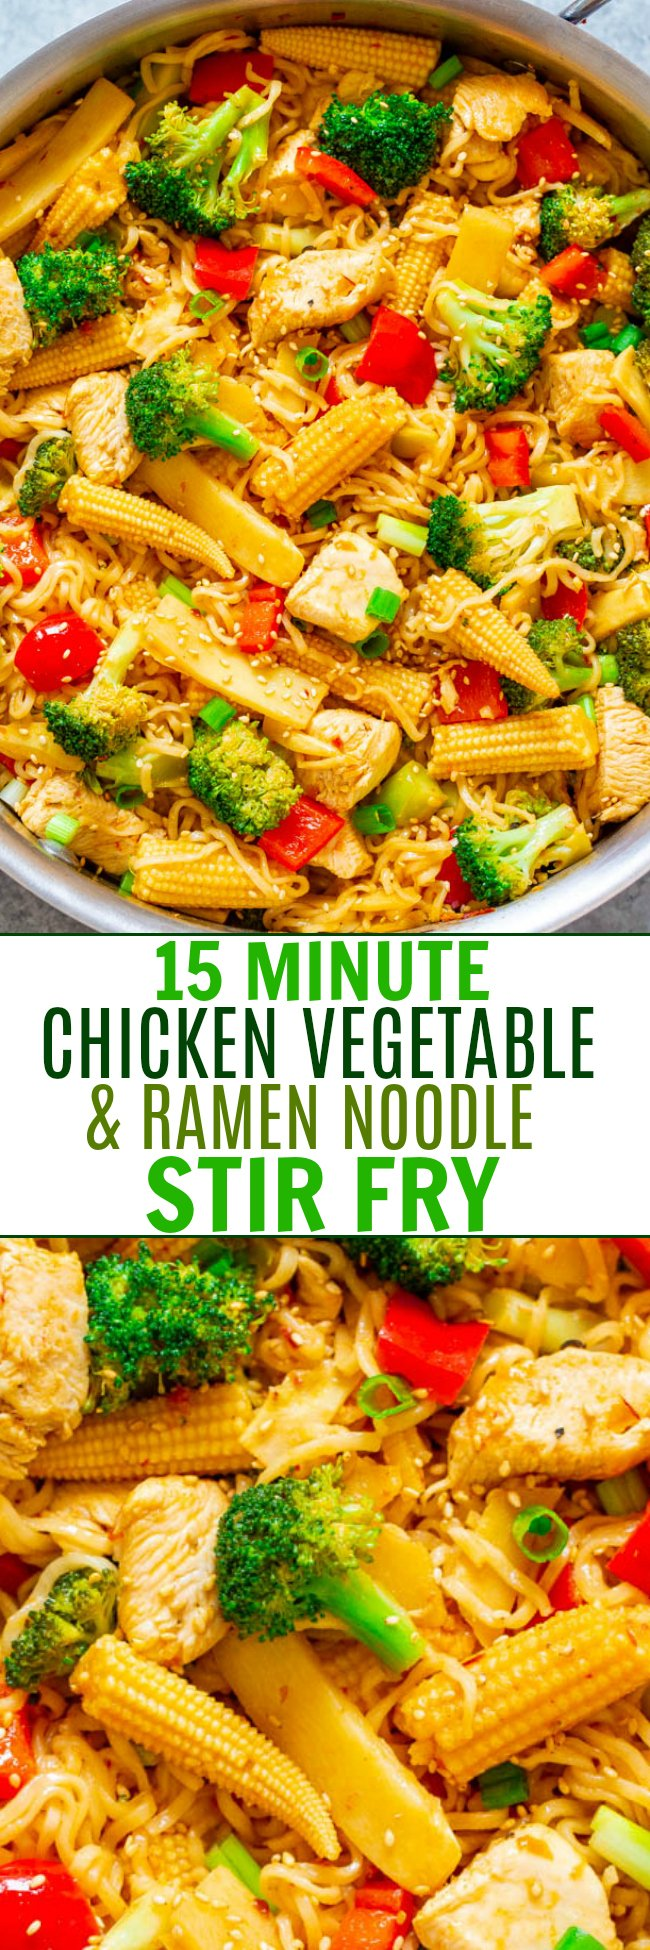 15-Minute Chicken, Vegetable, and Ramen Noodle Stir Fry - Don't call for takeout when you can make this EASY Asian stir fry in minutes!! HEALTHIER and faster than takeout and great for busy weeknights!!